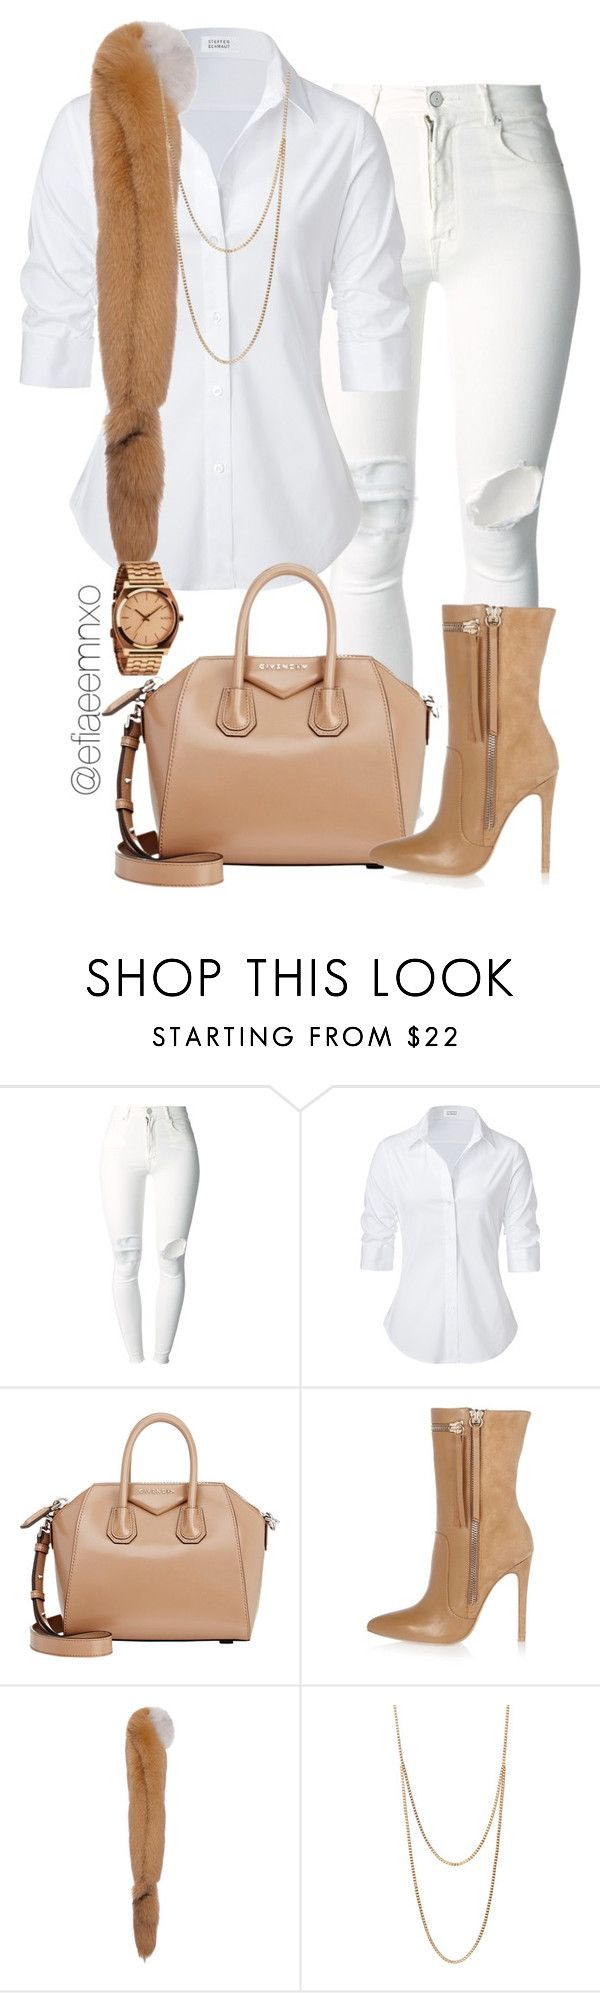 """""""Untitled #1083"""" by efiaeemnxo ❤ liked on Polyvore featuring mode, (+) PEOPLE, Steffen Schraut, Givenchy, River Island, Marni, Club Manhattan, Nixon, women's clothing et women"""